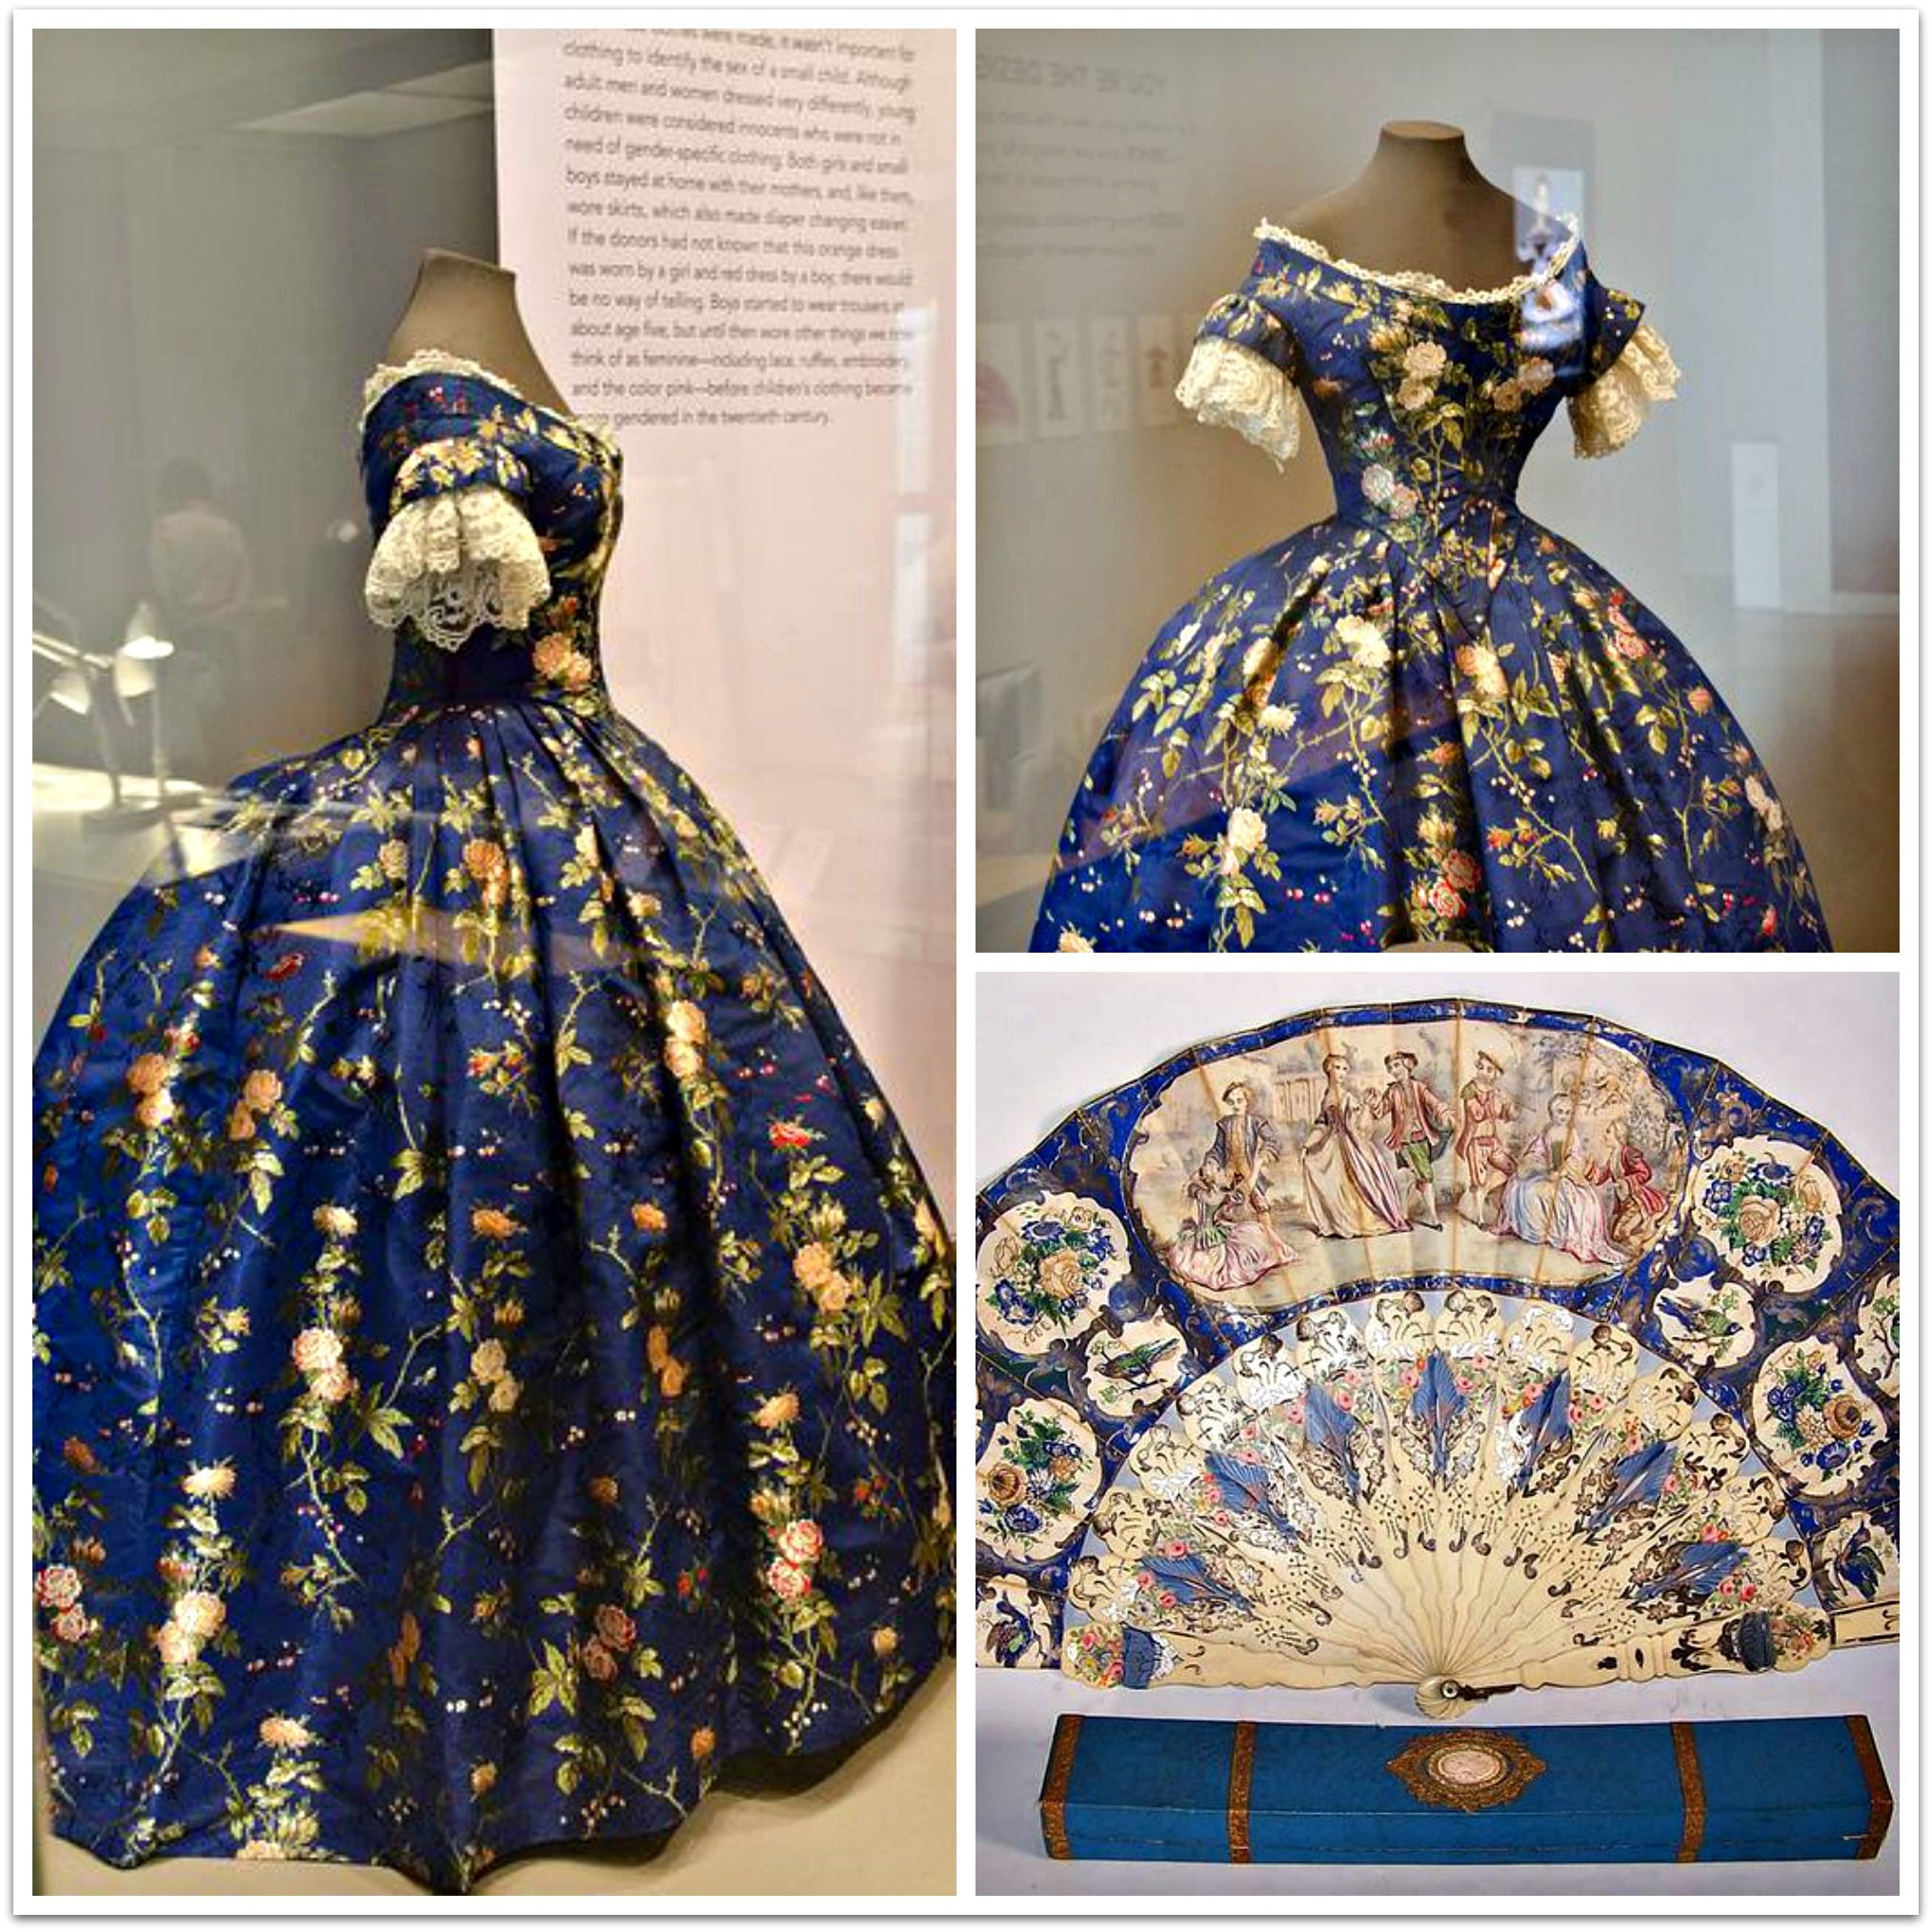 Fashion Dresses in 1850